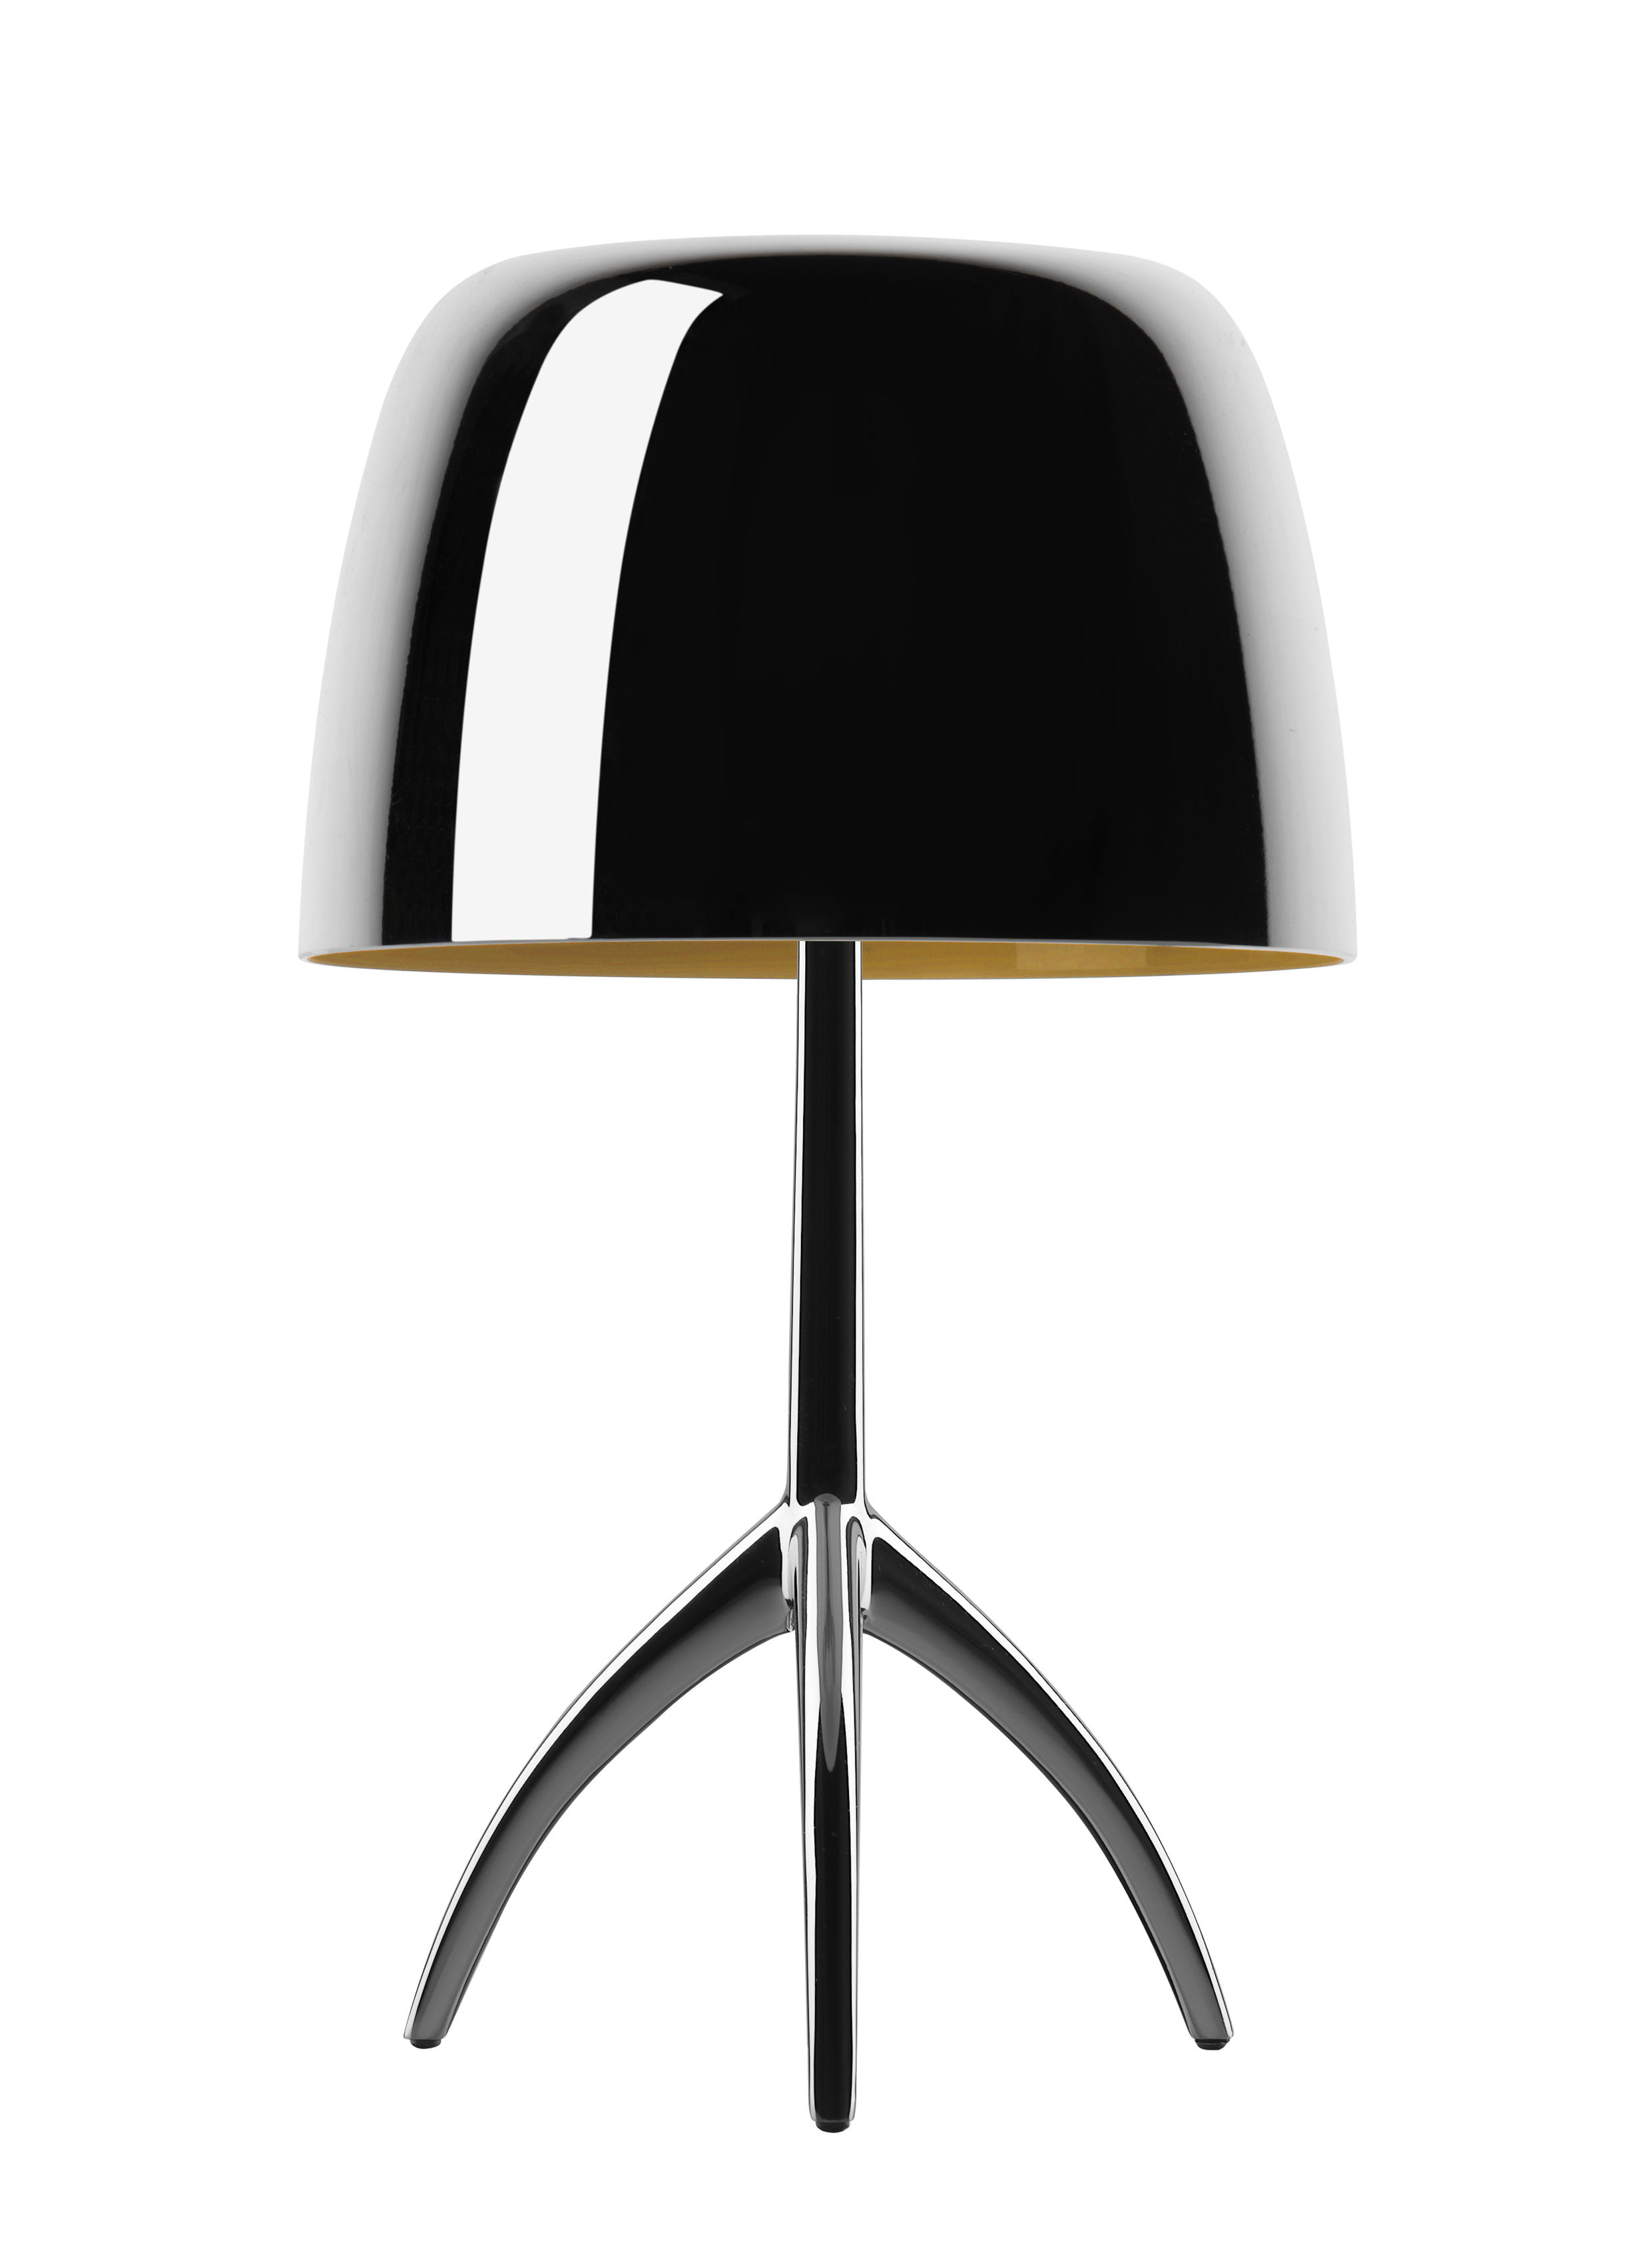 Lighting - Table Lamps - Lumière Piccola Table lamp - Switch - H 35 cm - 25th birthday by Foscarini - Polished aluminium / Black chrome leg - Blown glass, Polished aluminium